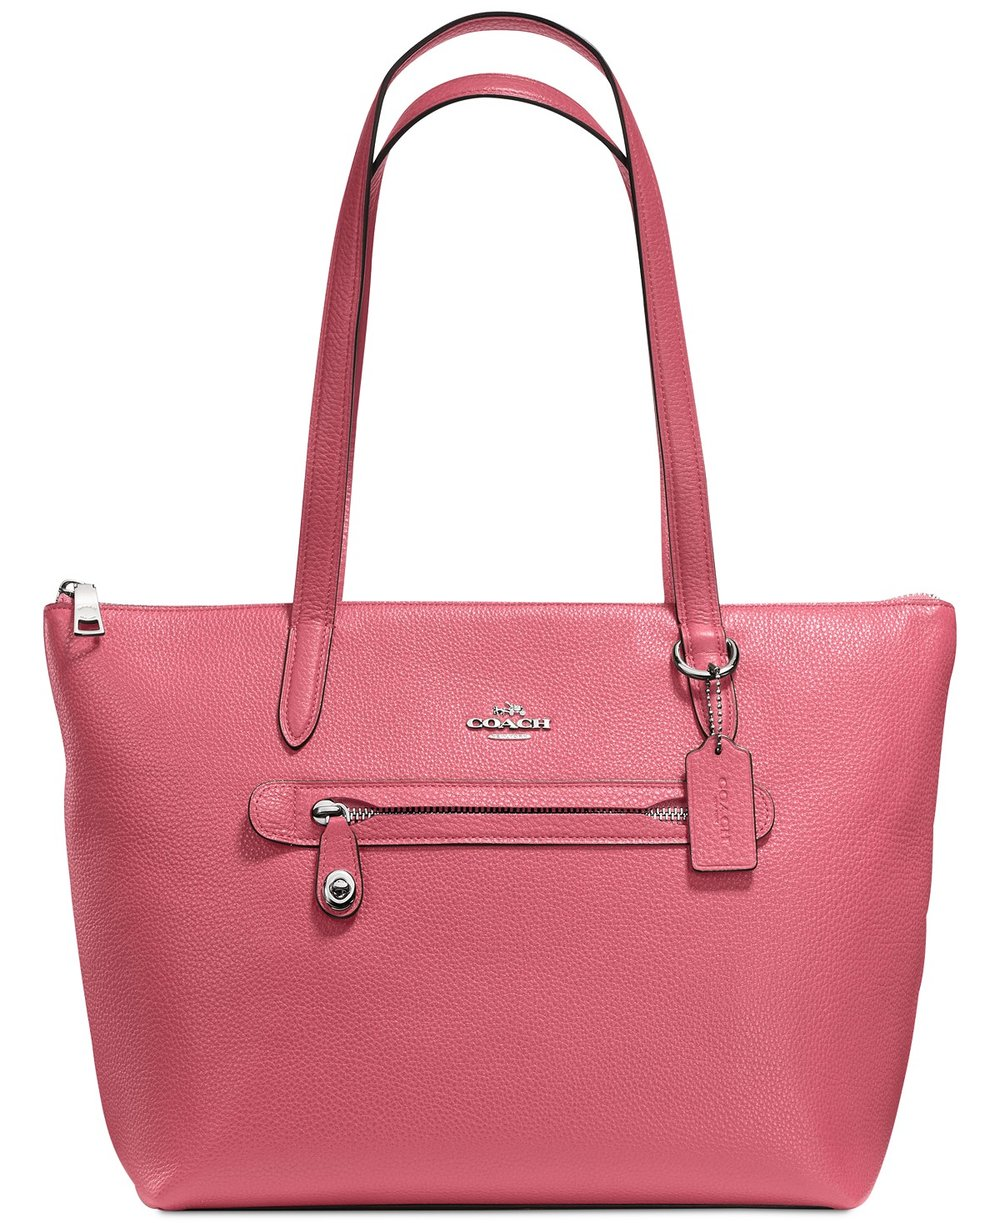 COACH Taylor Tote in Pebble Leather - This COACH Taylor Tote in Pebble Leather is available in 8 diffrent colors 4 of which are on sale now. Normally $275.00 now on sale for $165.00